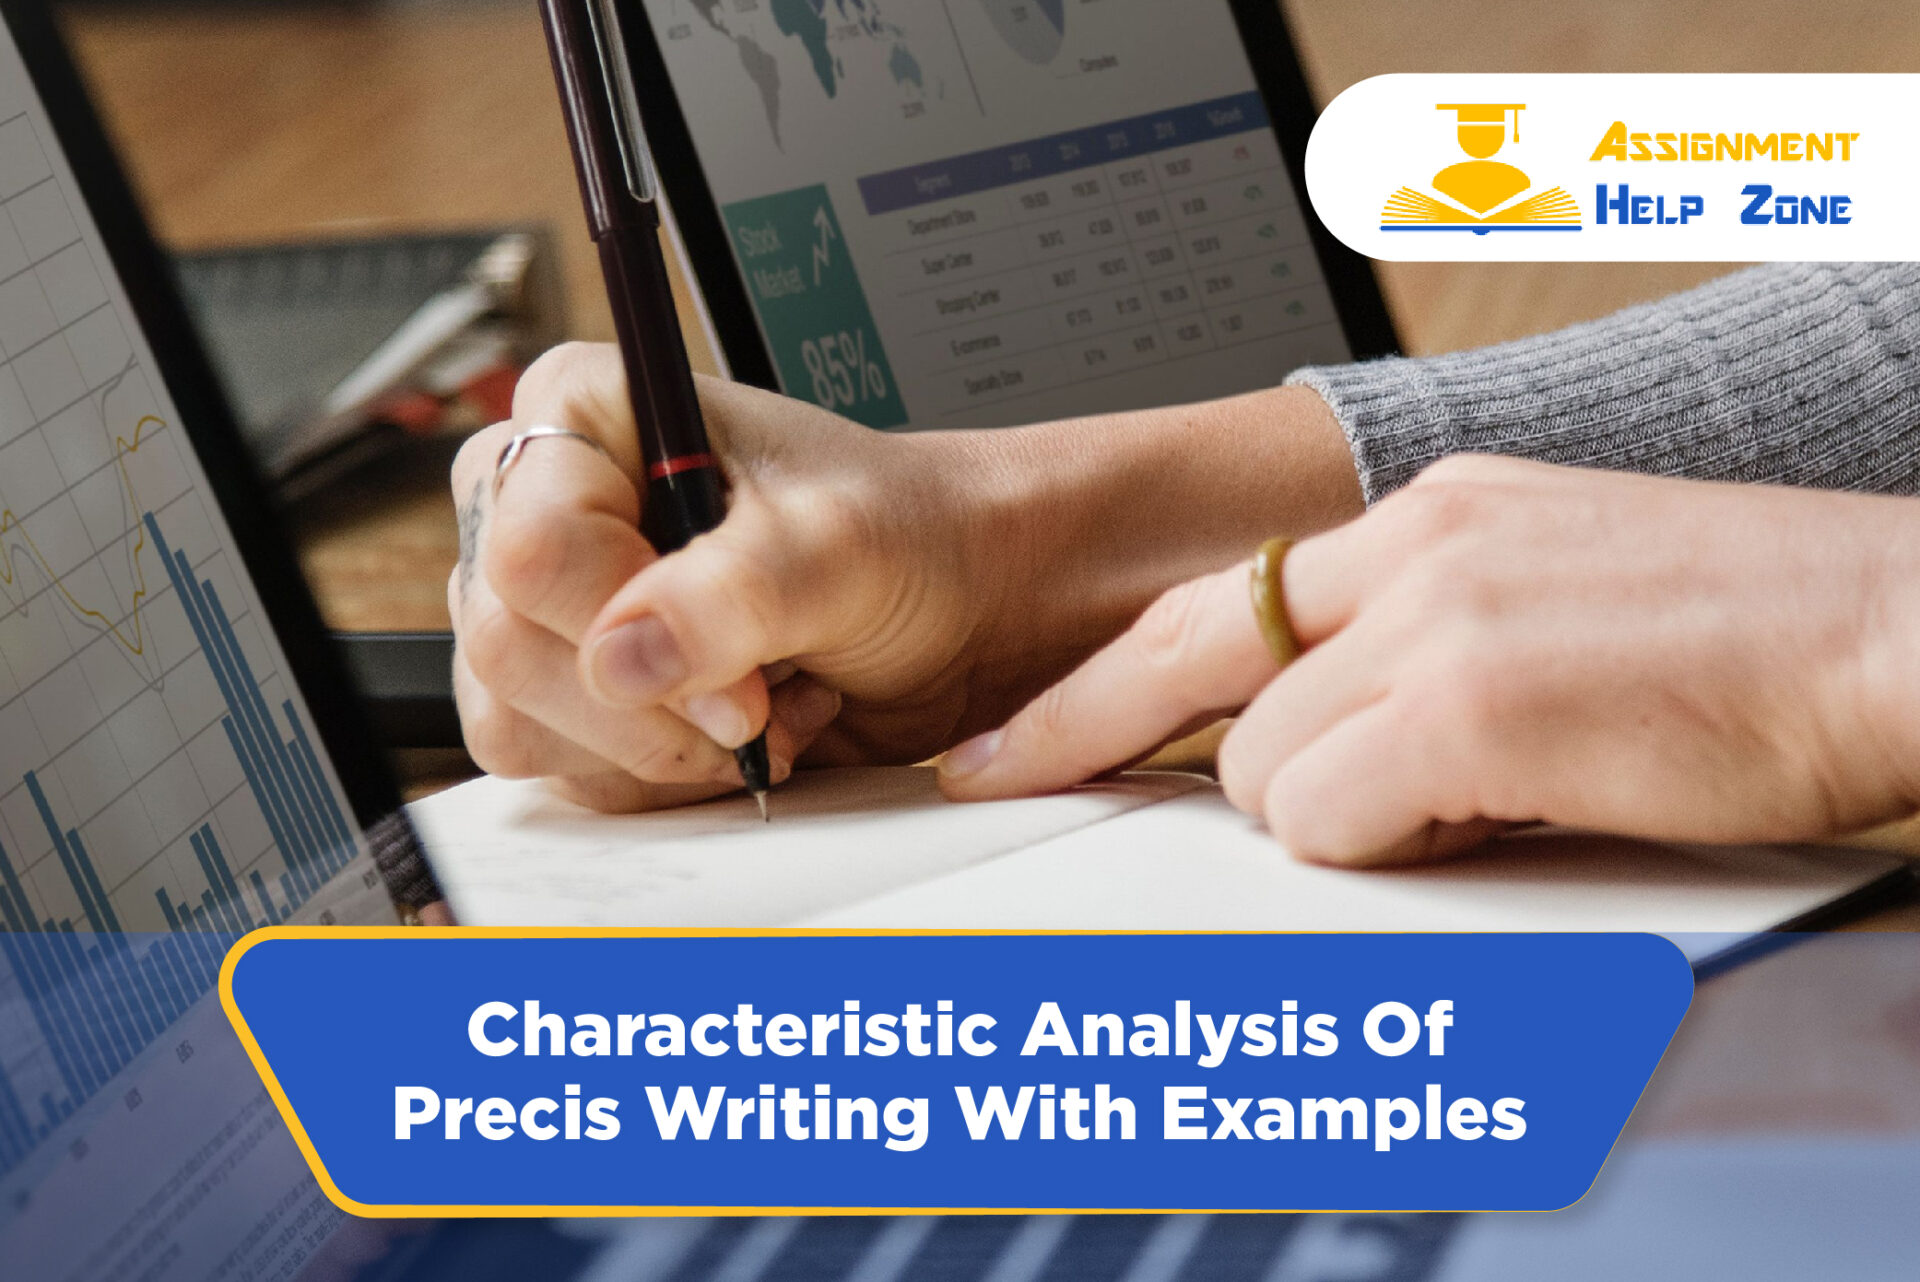 Characteristic-Analysis-Of-Precis-Writing-With-Examples